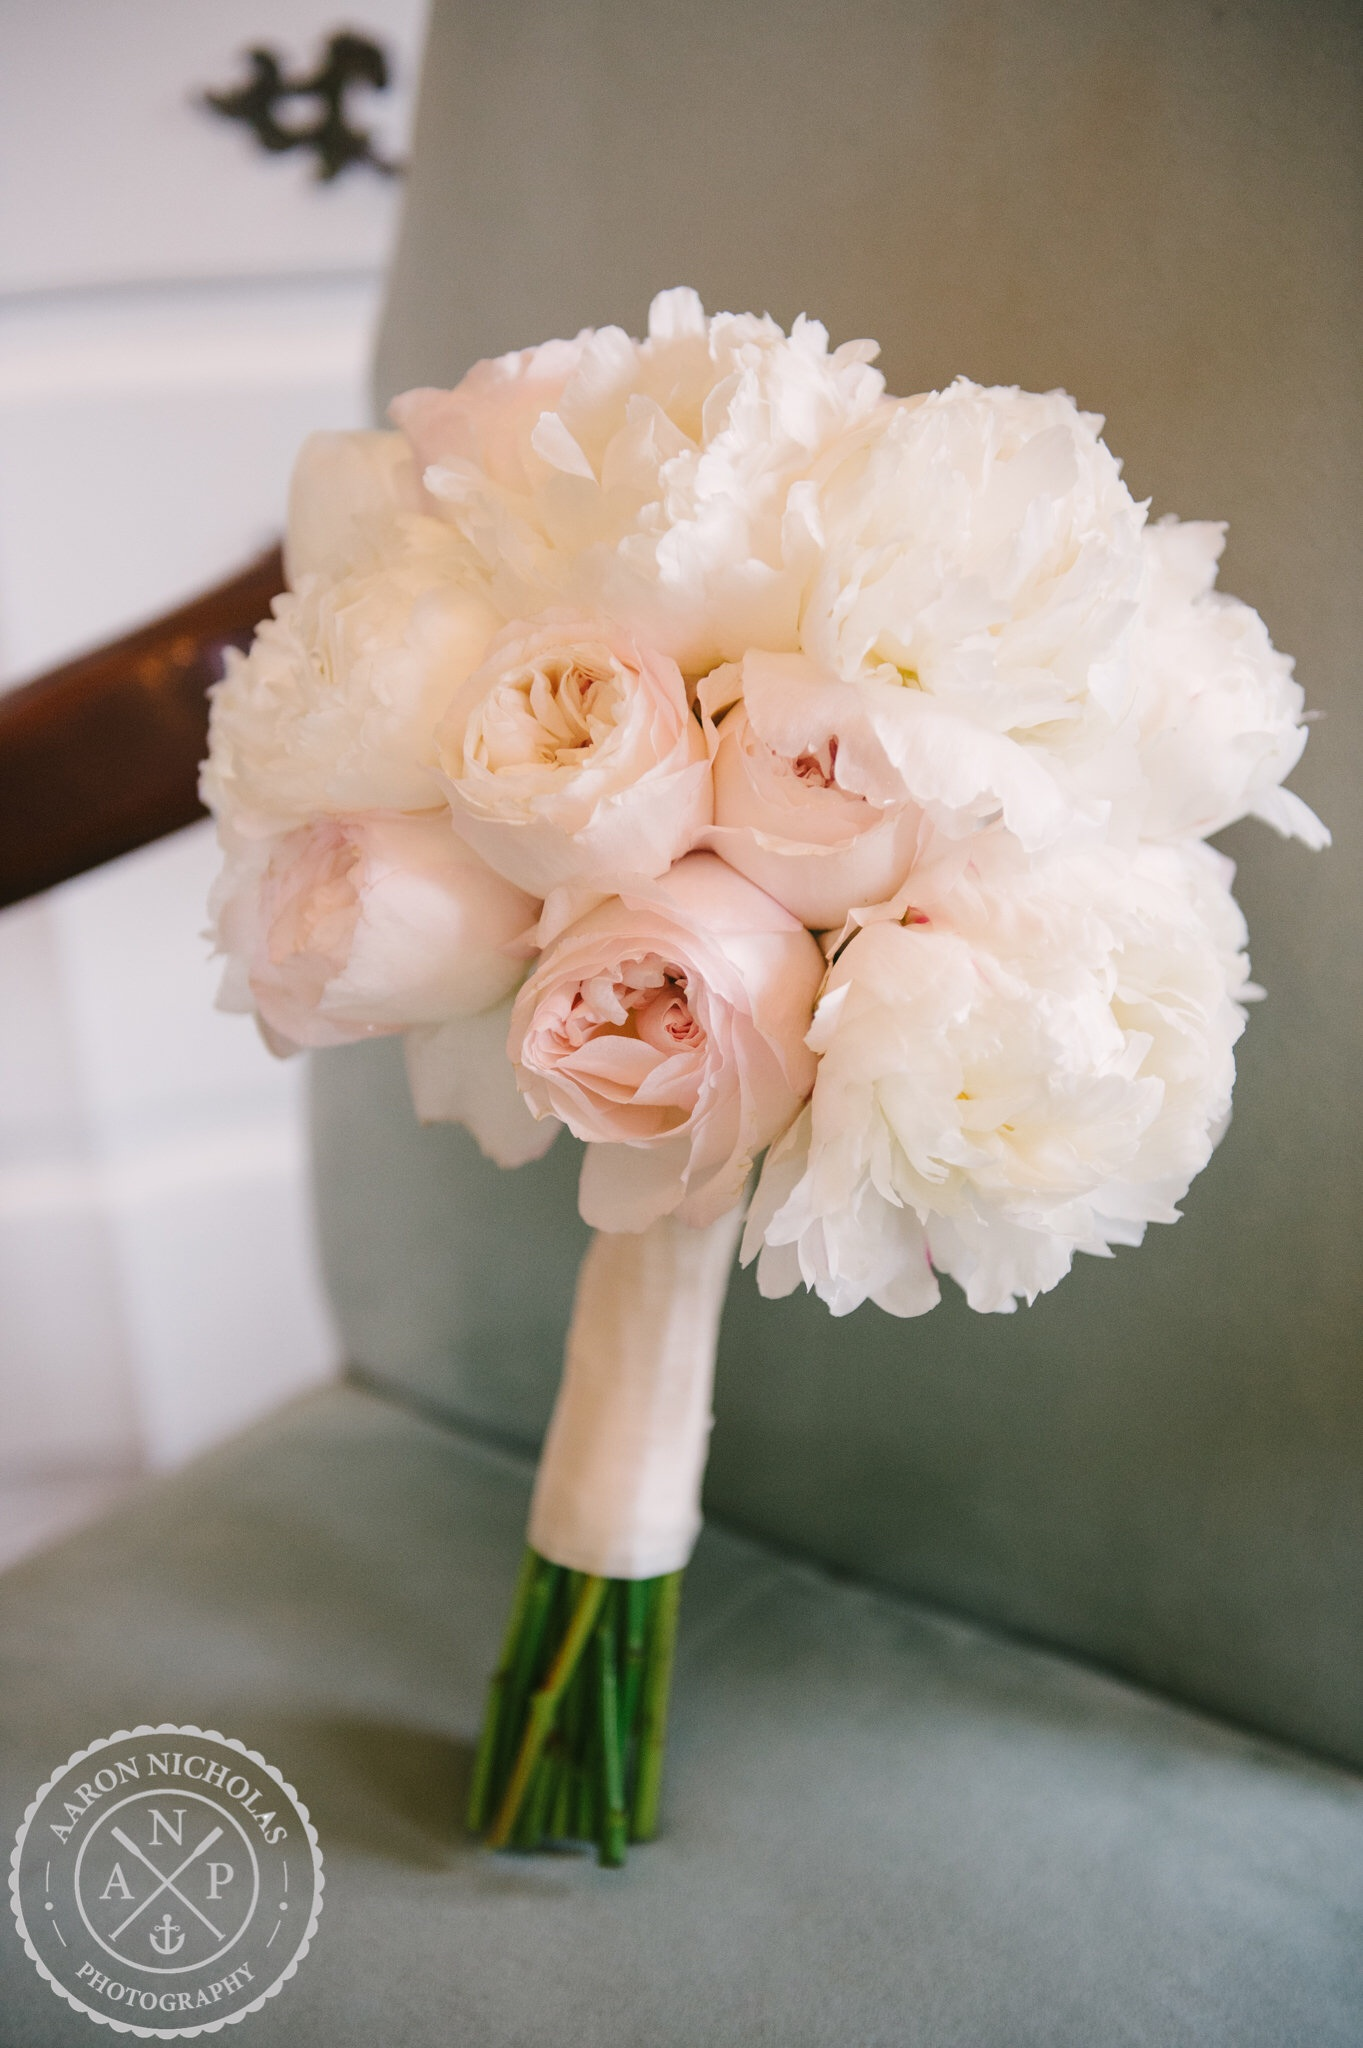 the bridesmaids wore blush pink gowns and carried bouquets made of white hydrangea pink tulips white stock pink ohara garden roses white lisianthus and - White Garden Rose Bouquet